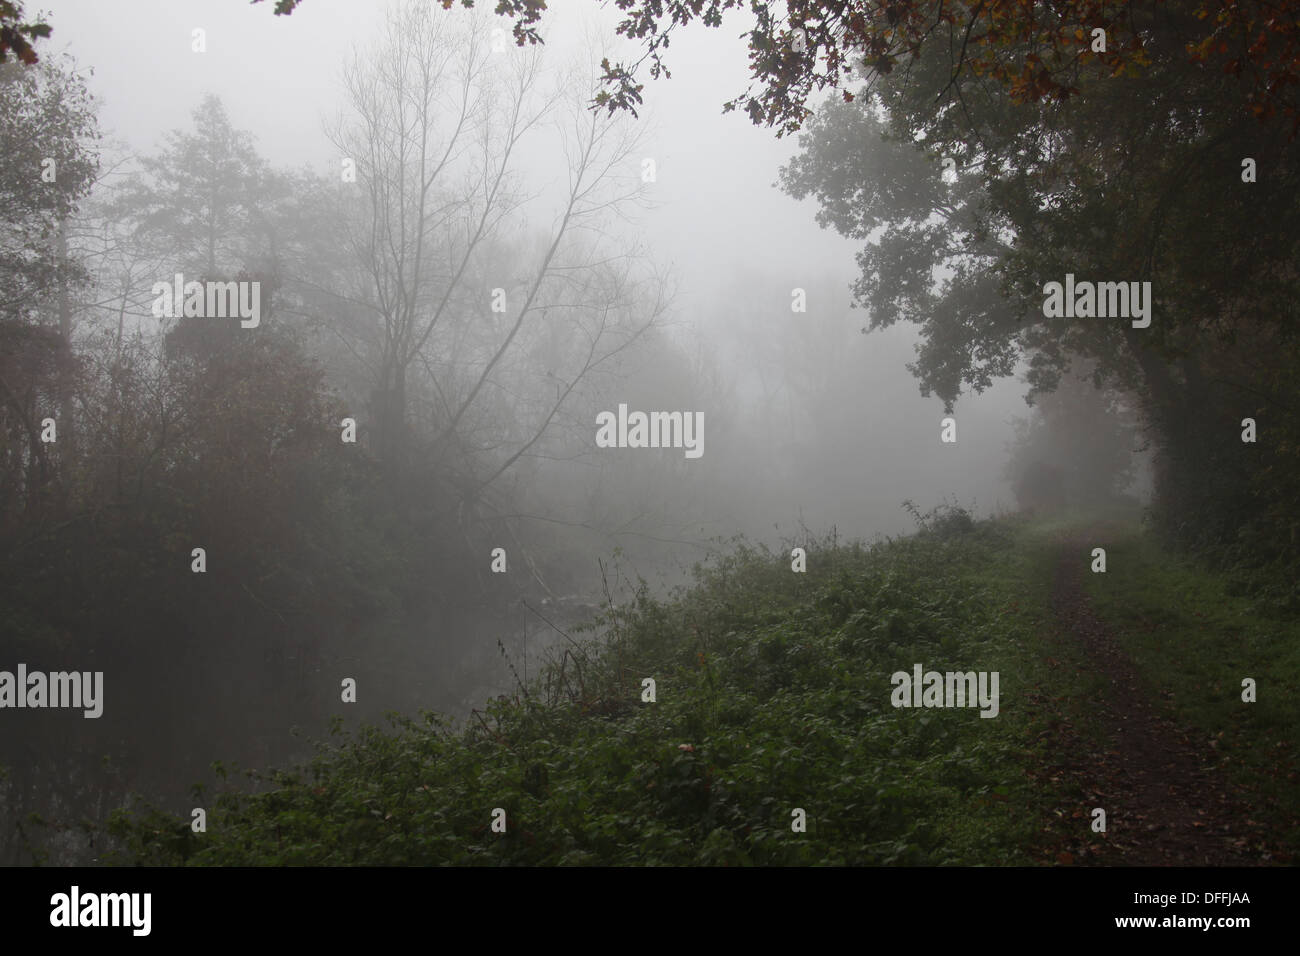 A misty morning alongside a cold and unwelcome looking river showing a footpath cloaked in mist. - Stock Image